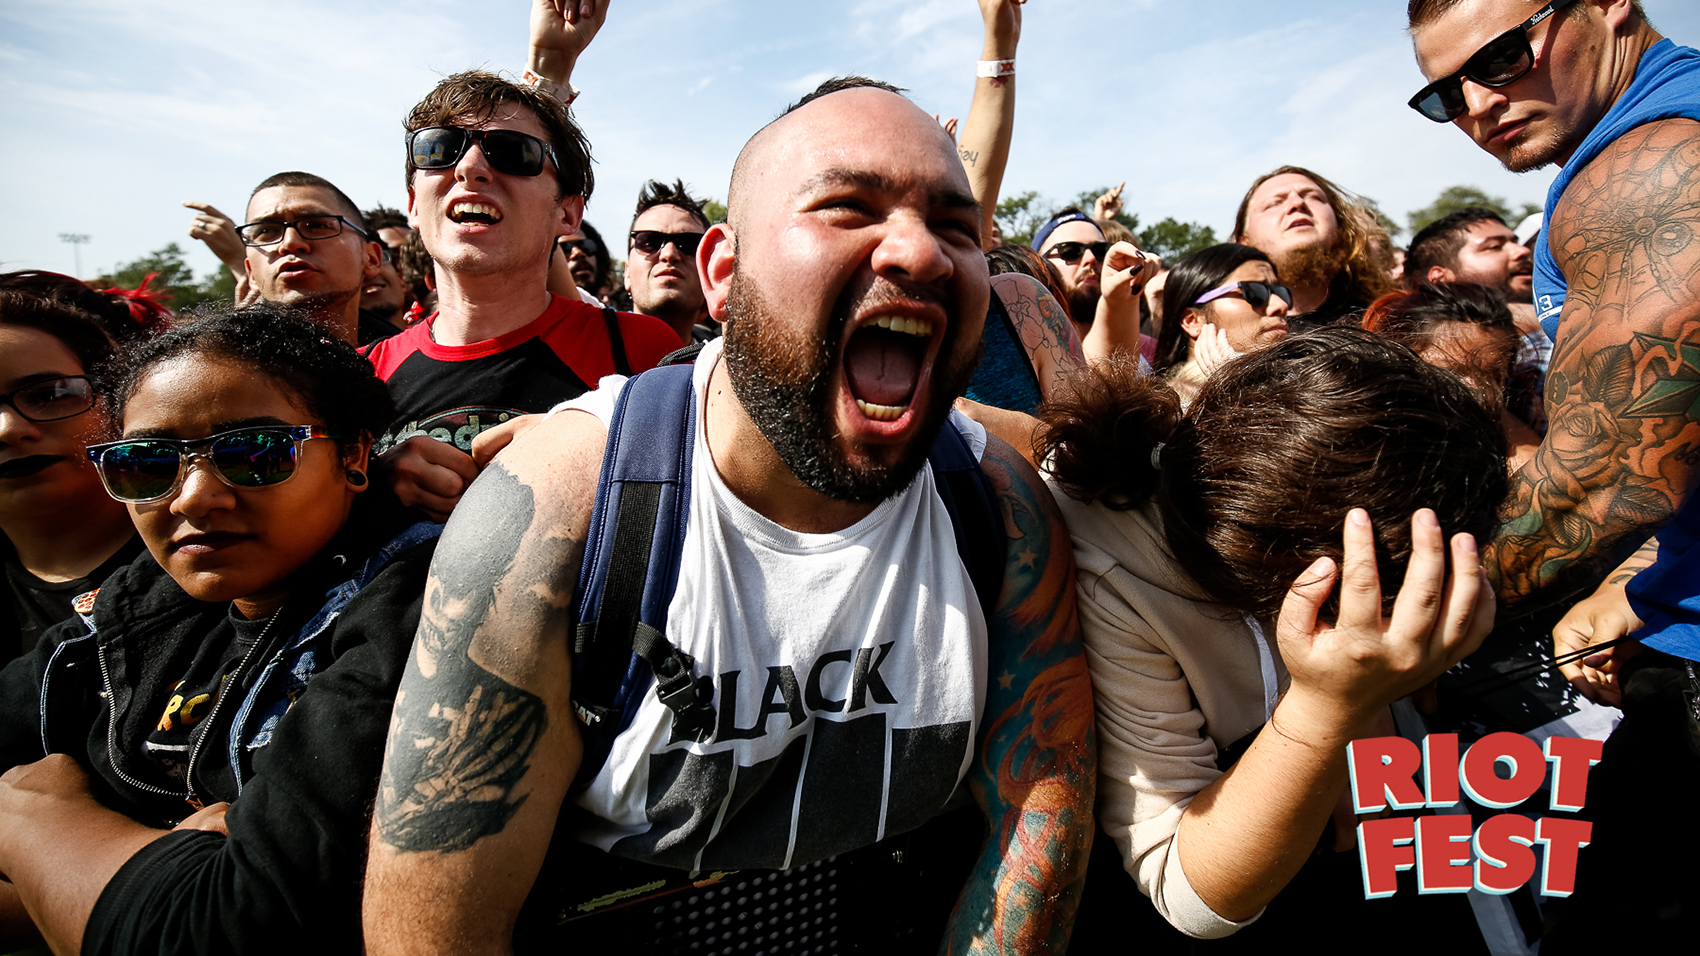 People Of Riot Fest Ch...